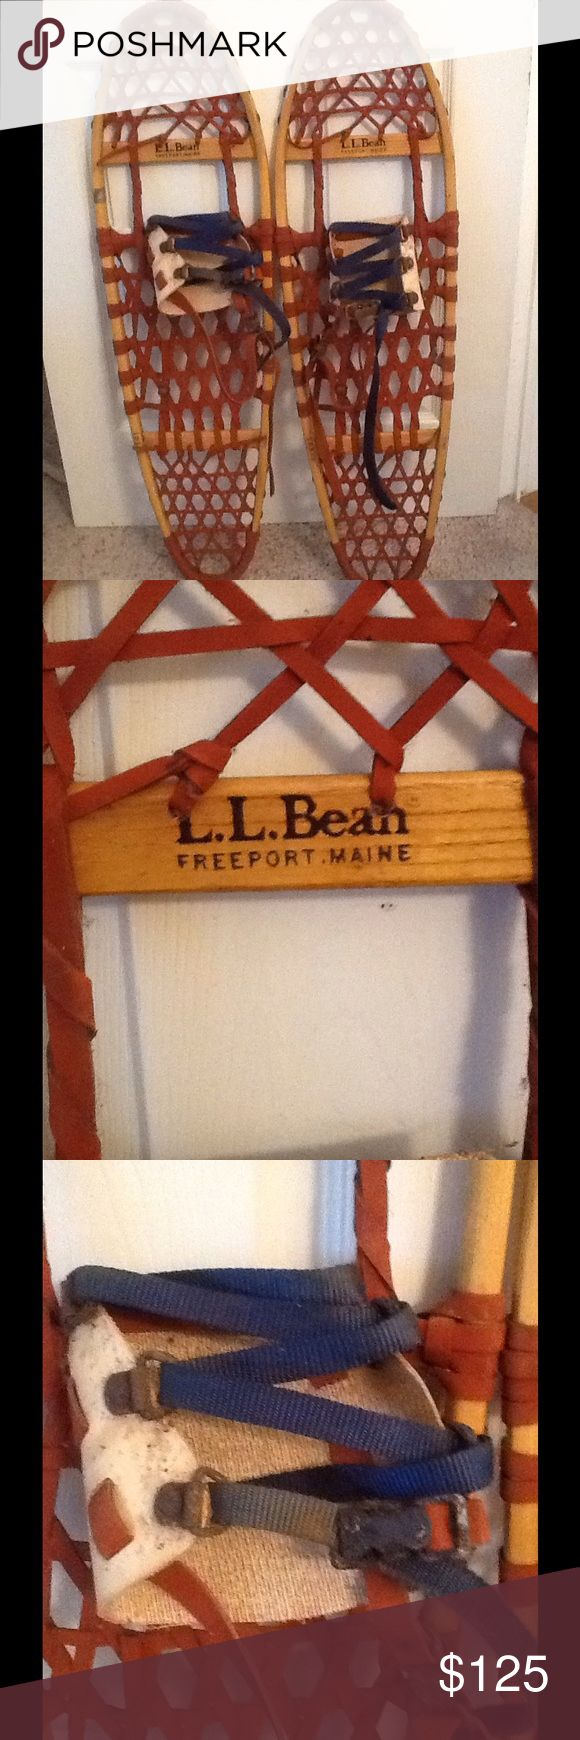 LL BEAN FREEPORT MAINE VINTAGE WOOD SNOW SHOES LL Bean Freeport Maine vintage wood snow shoes.  Sz 10 X 36.  Great condition with exception to one clamp on right shoe is rusty.  I have not tried to clean the clamp.  Great collectible snow shoes, just in time for skiing!  Check out my other designer items LL Bean Shoes Winter & Rain Boots